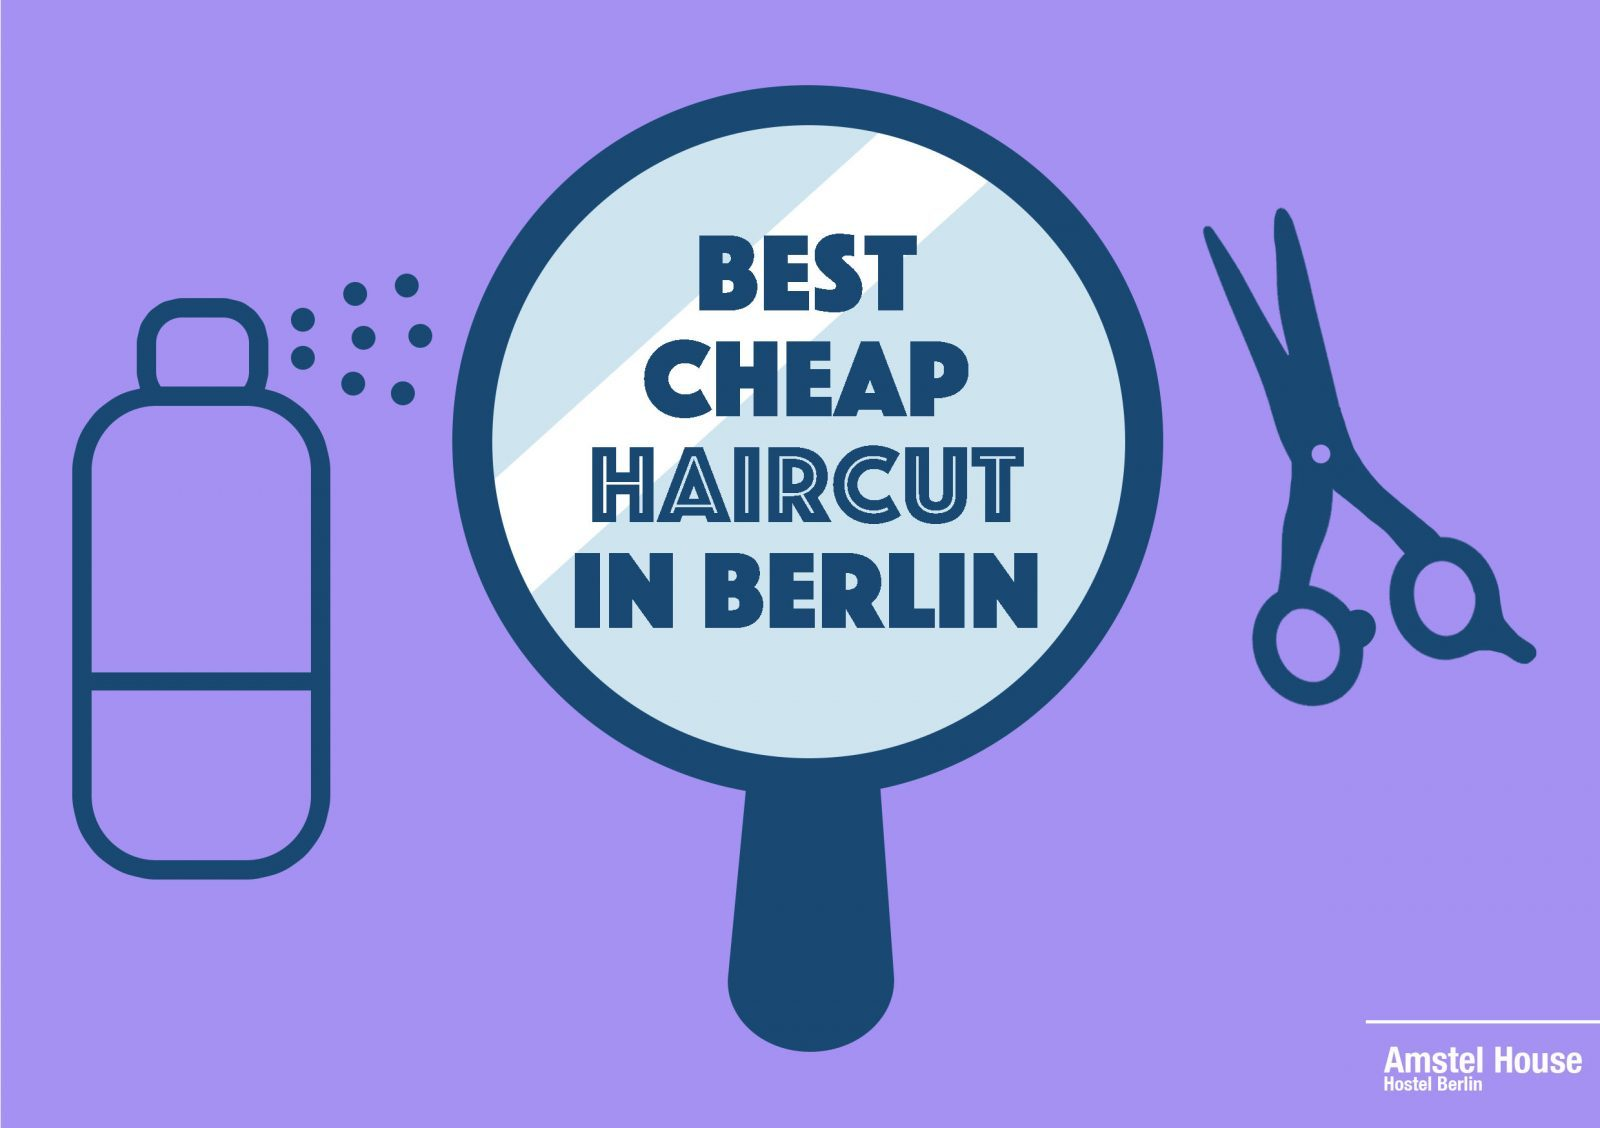 best cheap haircut in Berlin | Amstel House Berlin Travel Blog